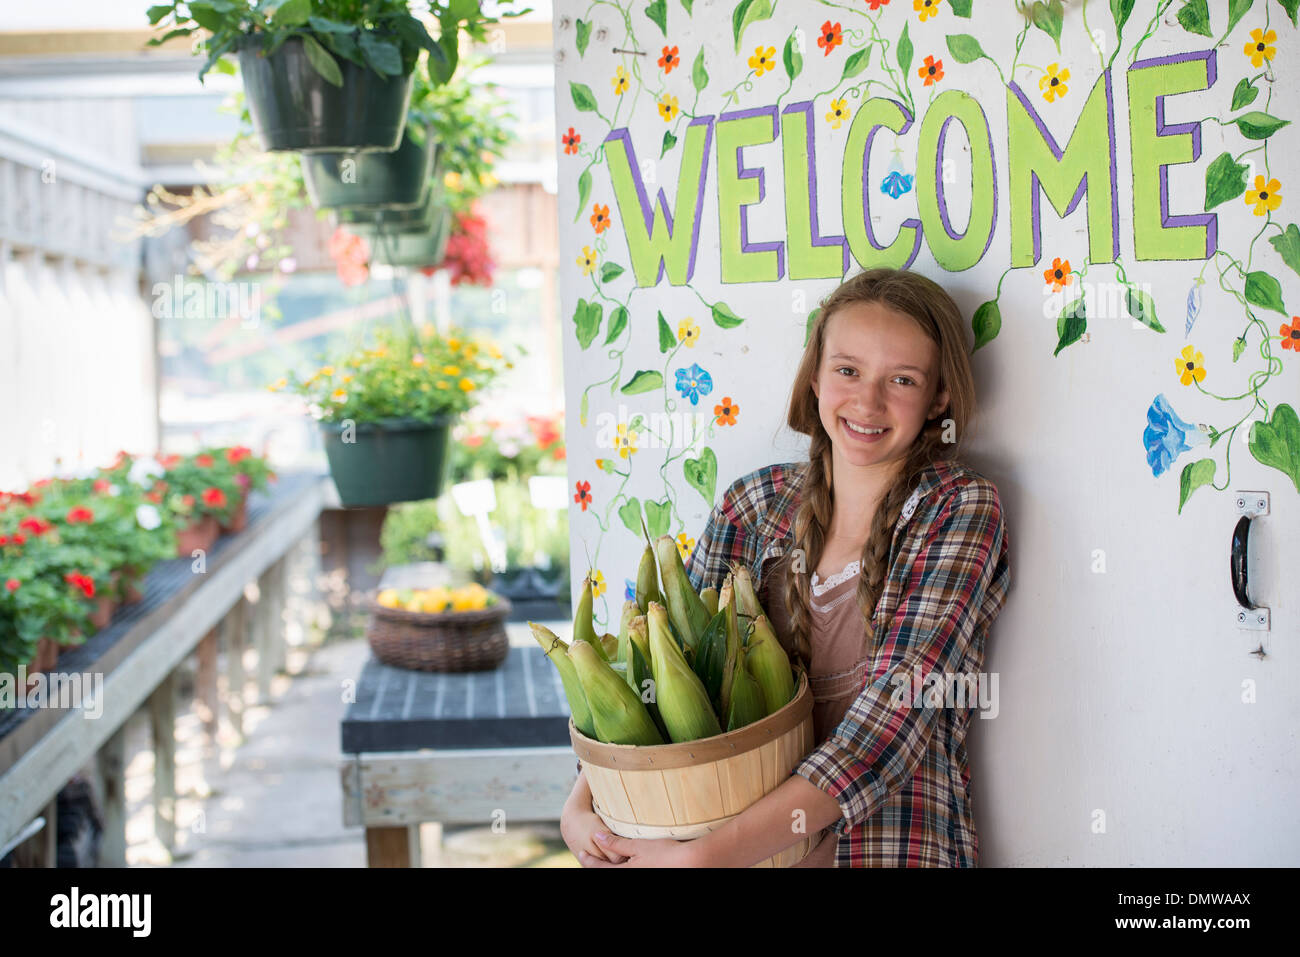 Summer on an organic farm. A girl holding a basket of fresh corn  by  Welcome sign. - Stock Image